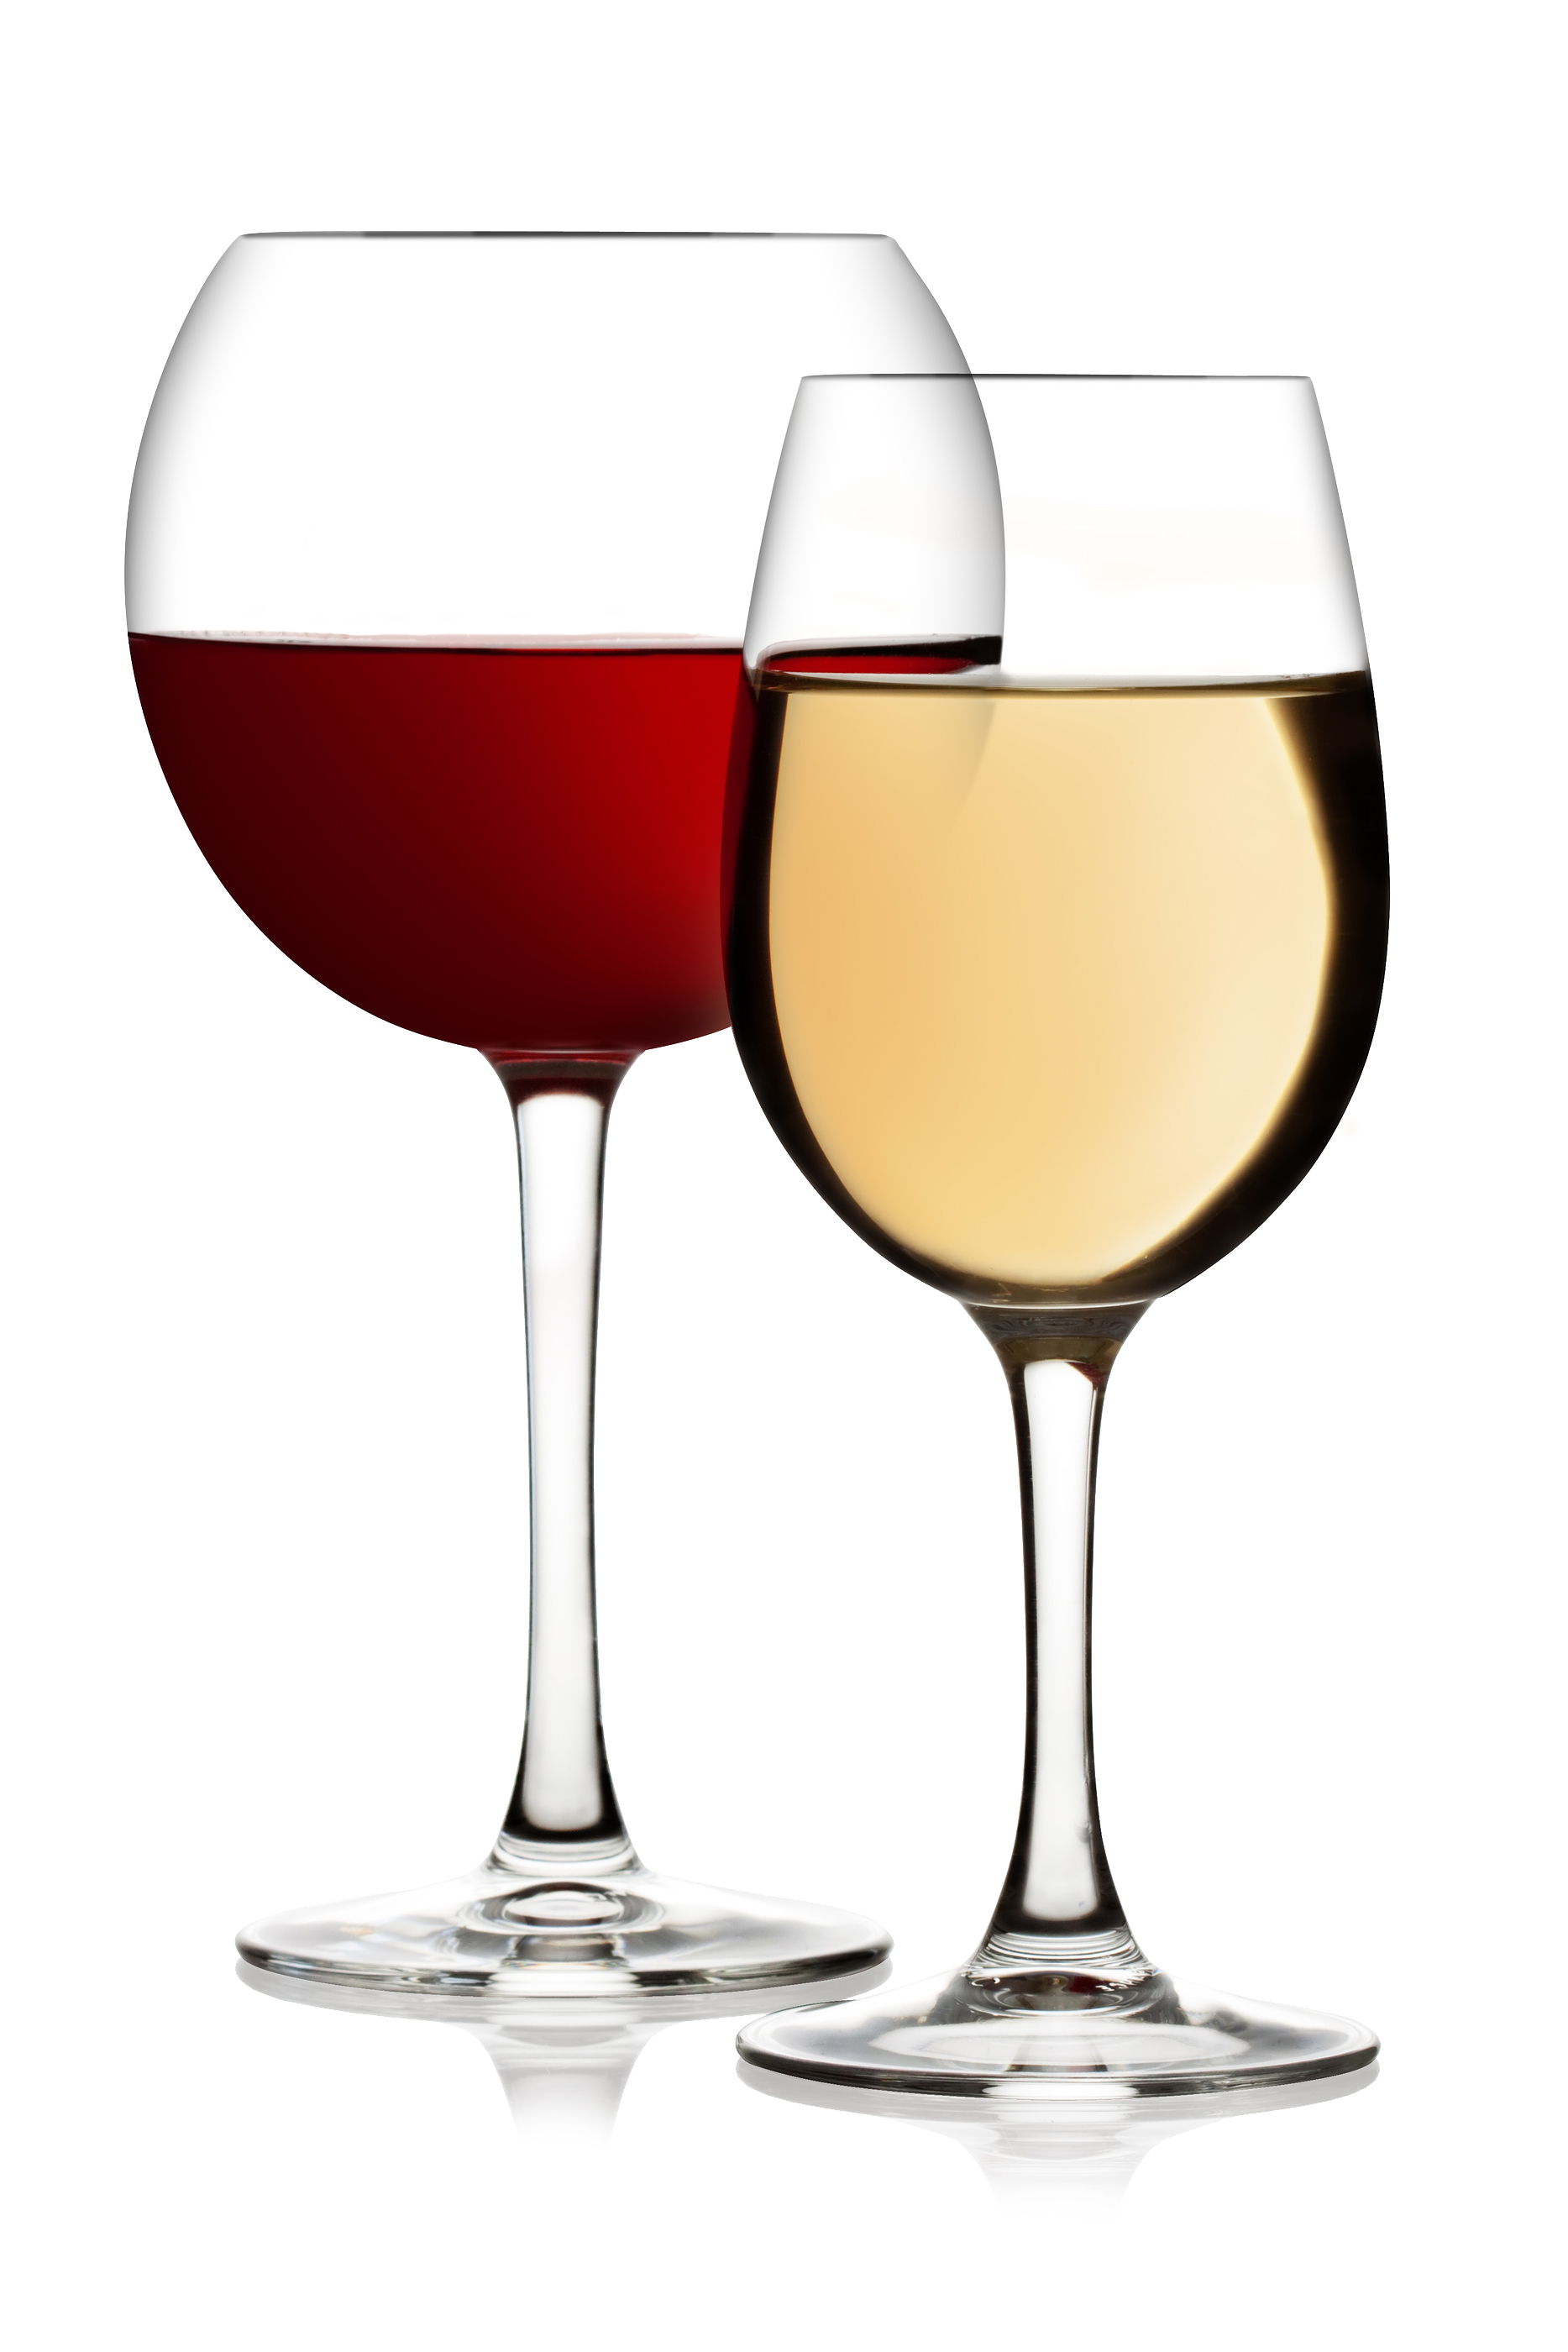 508 Wine Glasses free clipart.